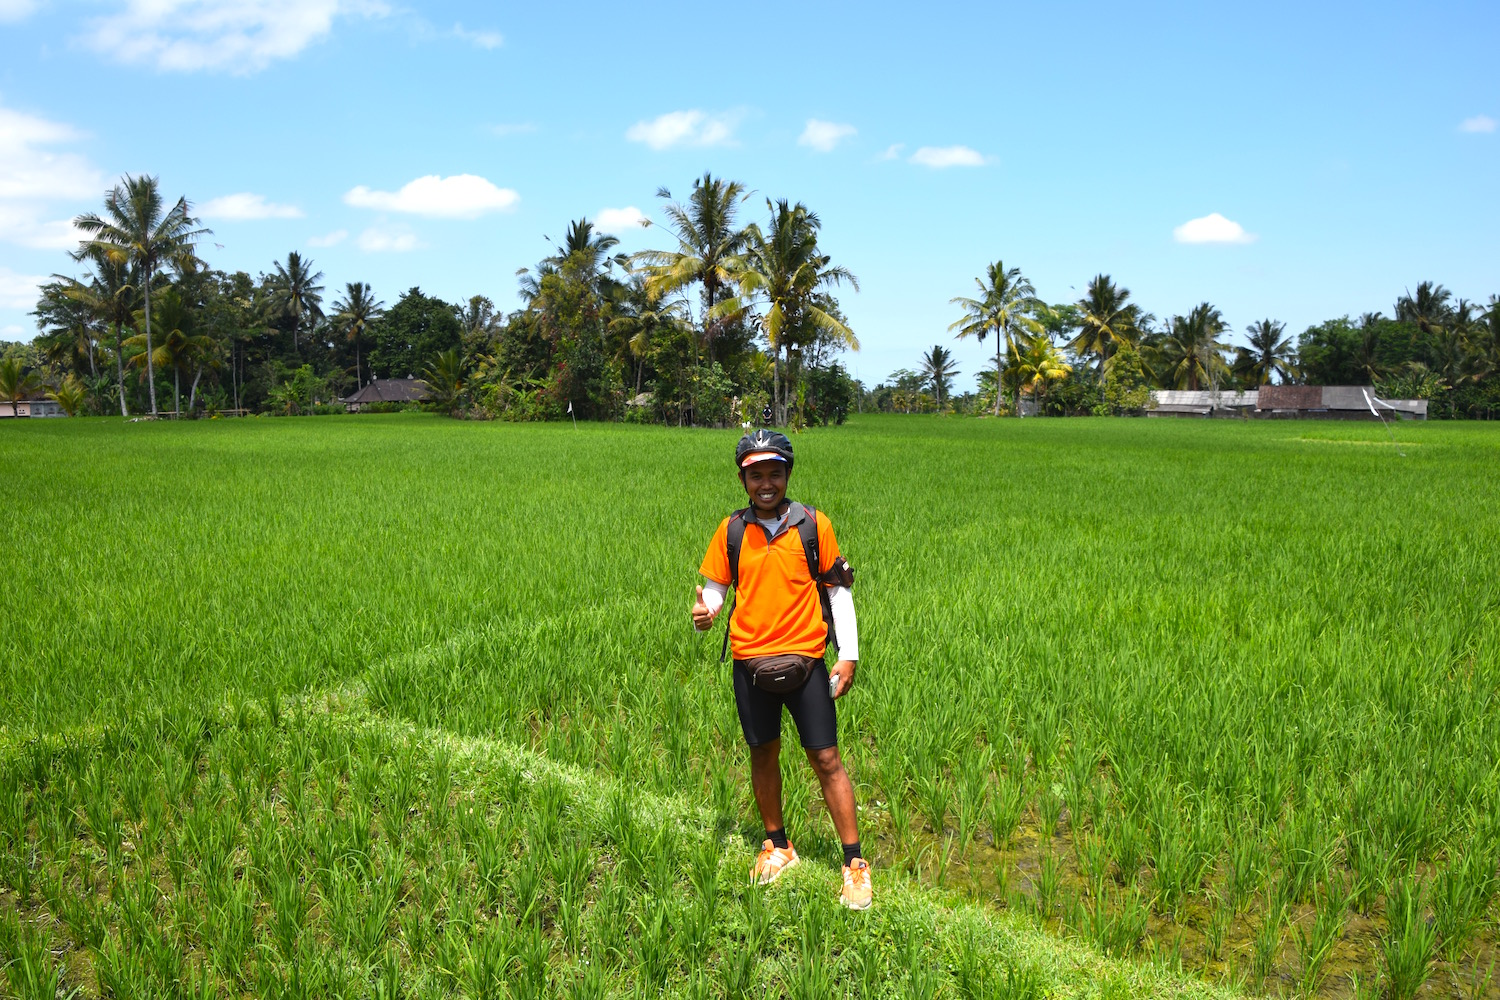 Rondreis door Bali - rocky cycling tours